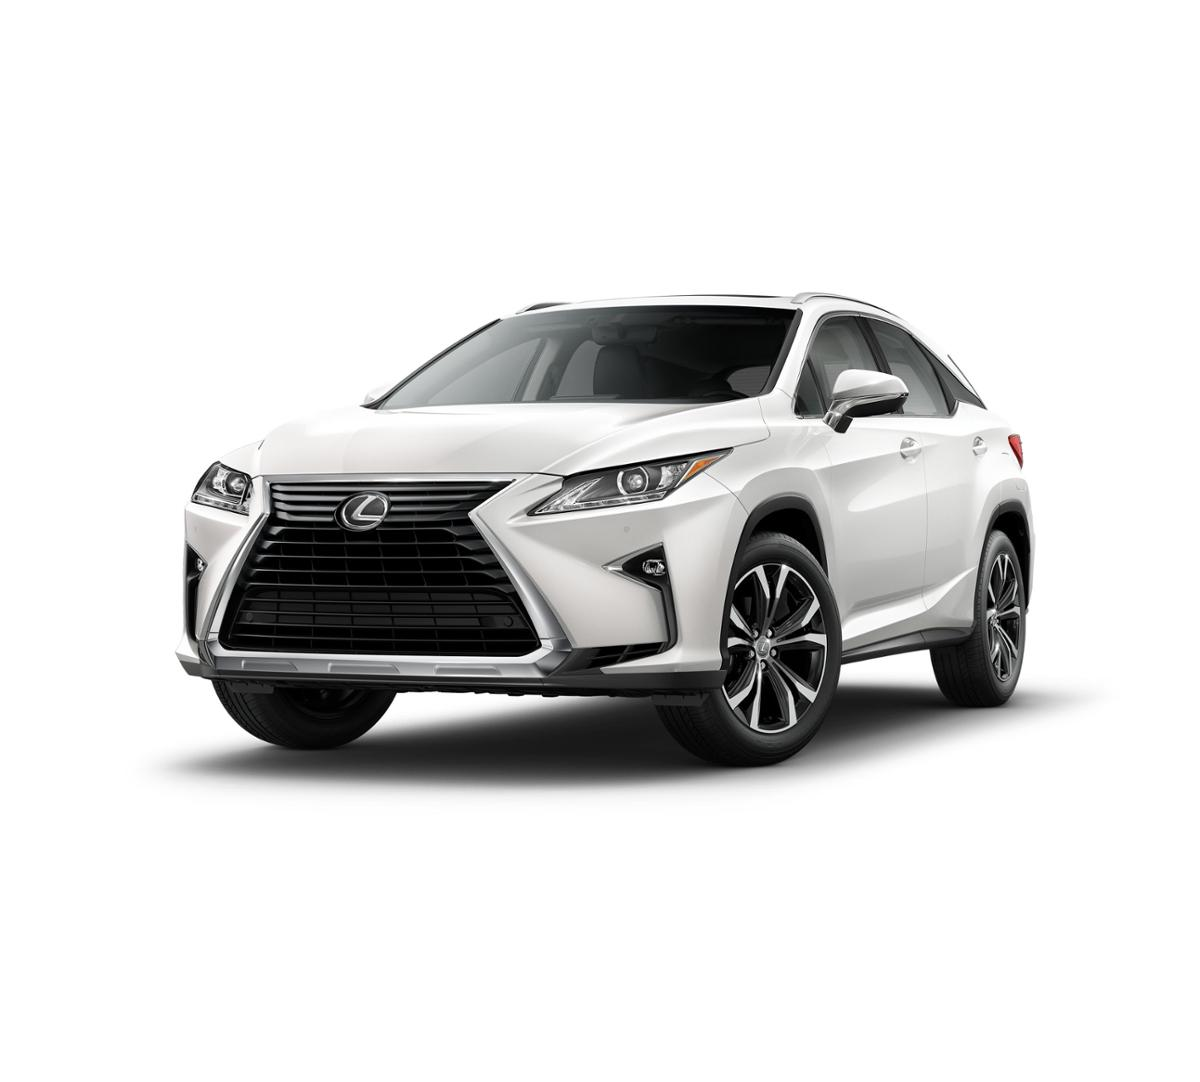 2017 Lexus RX 350 Vehicle Photo in Appleton, WI 54913